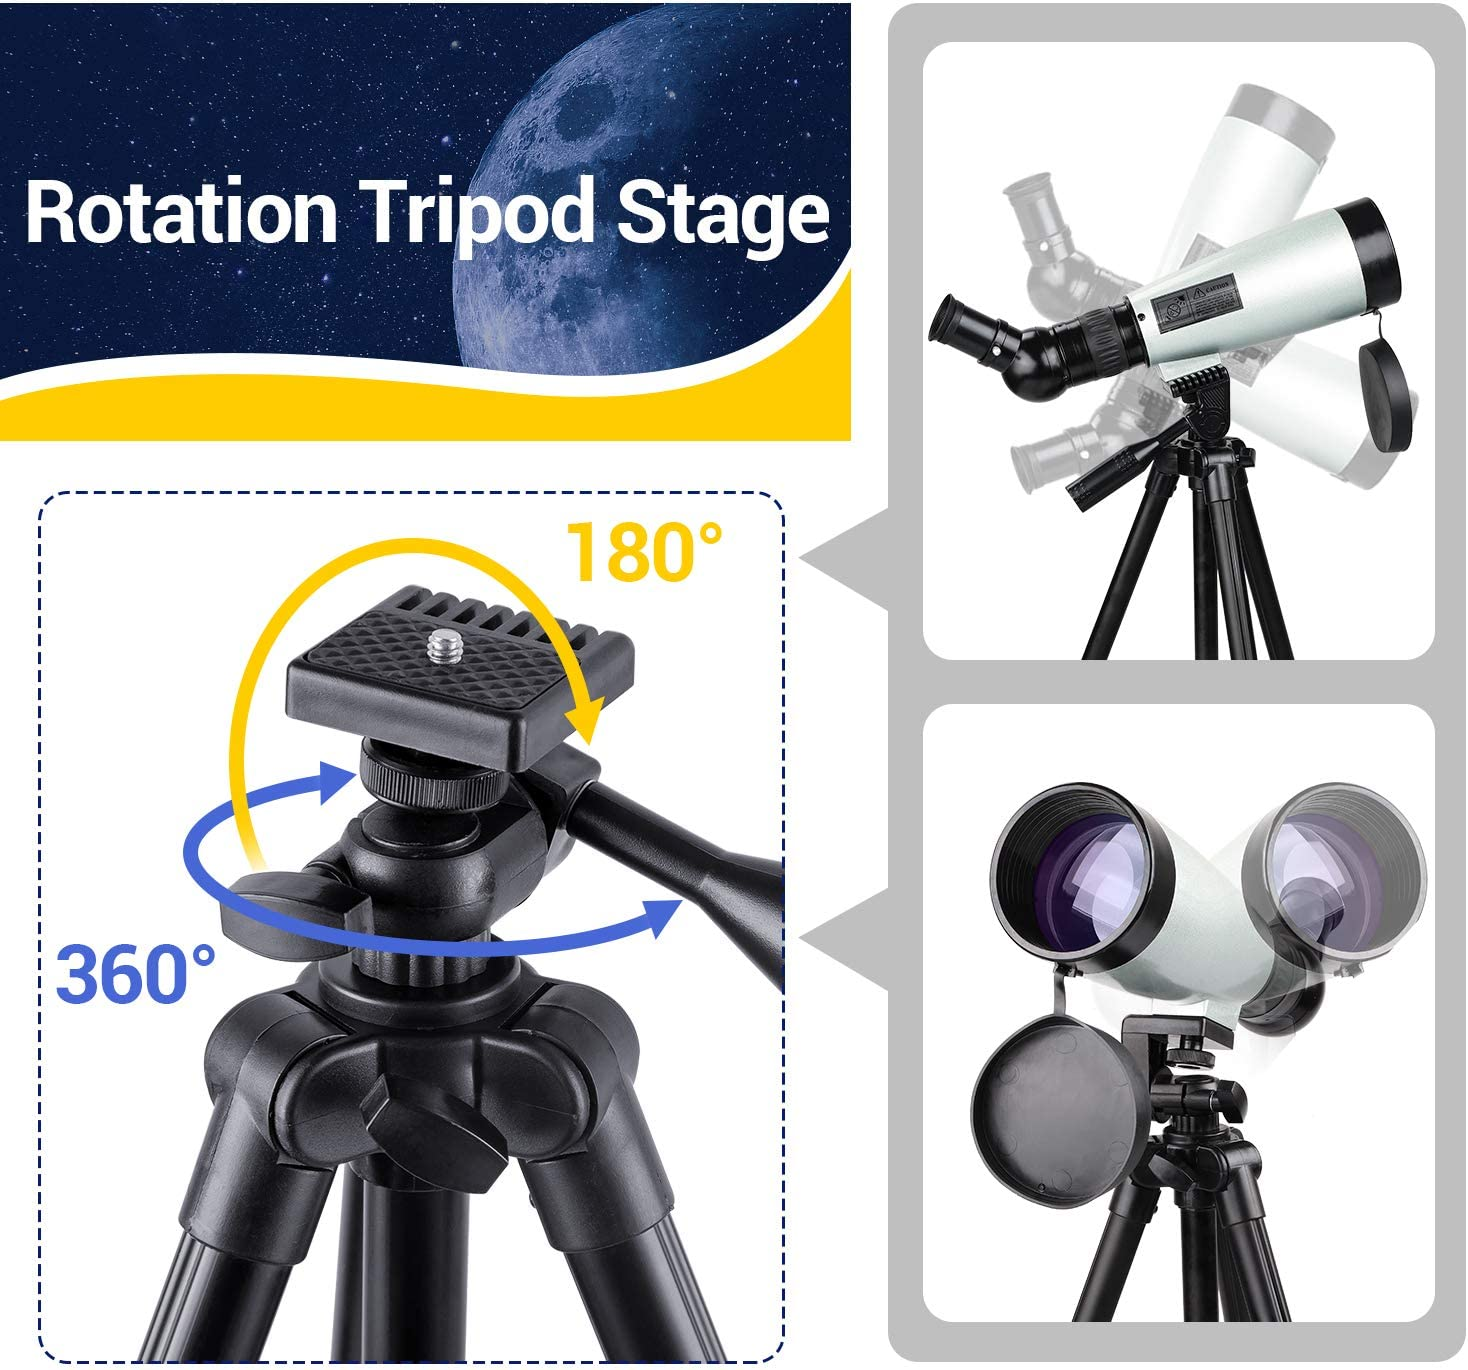 Smartphone Adapter HUTACT 300mm Telescope for Kids Adults Astronomy Beginners with Tripod 70mm Aperture Refractor Telescope for Astronomy Two Eyepieces Barlow Lens